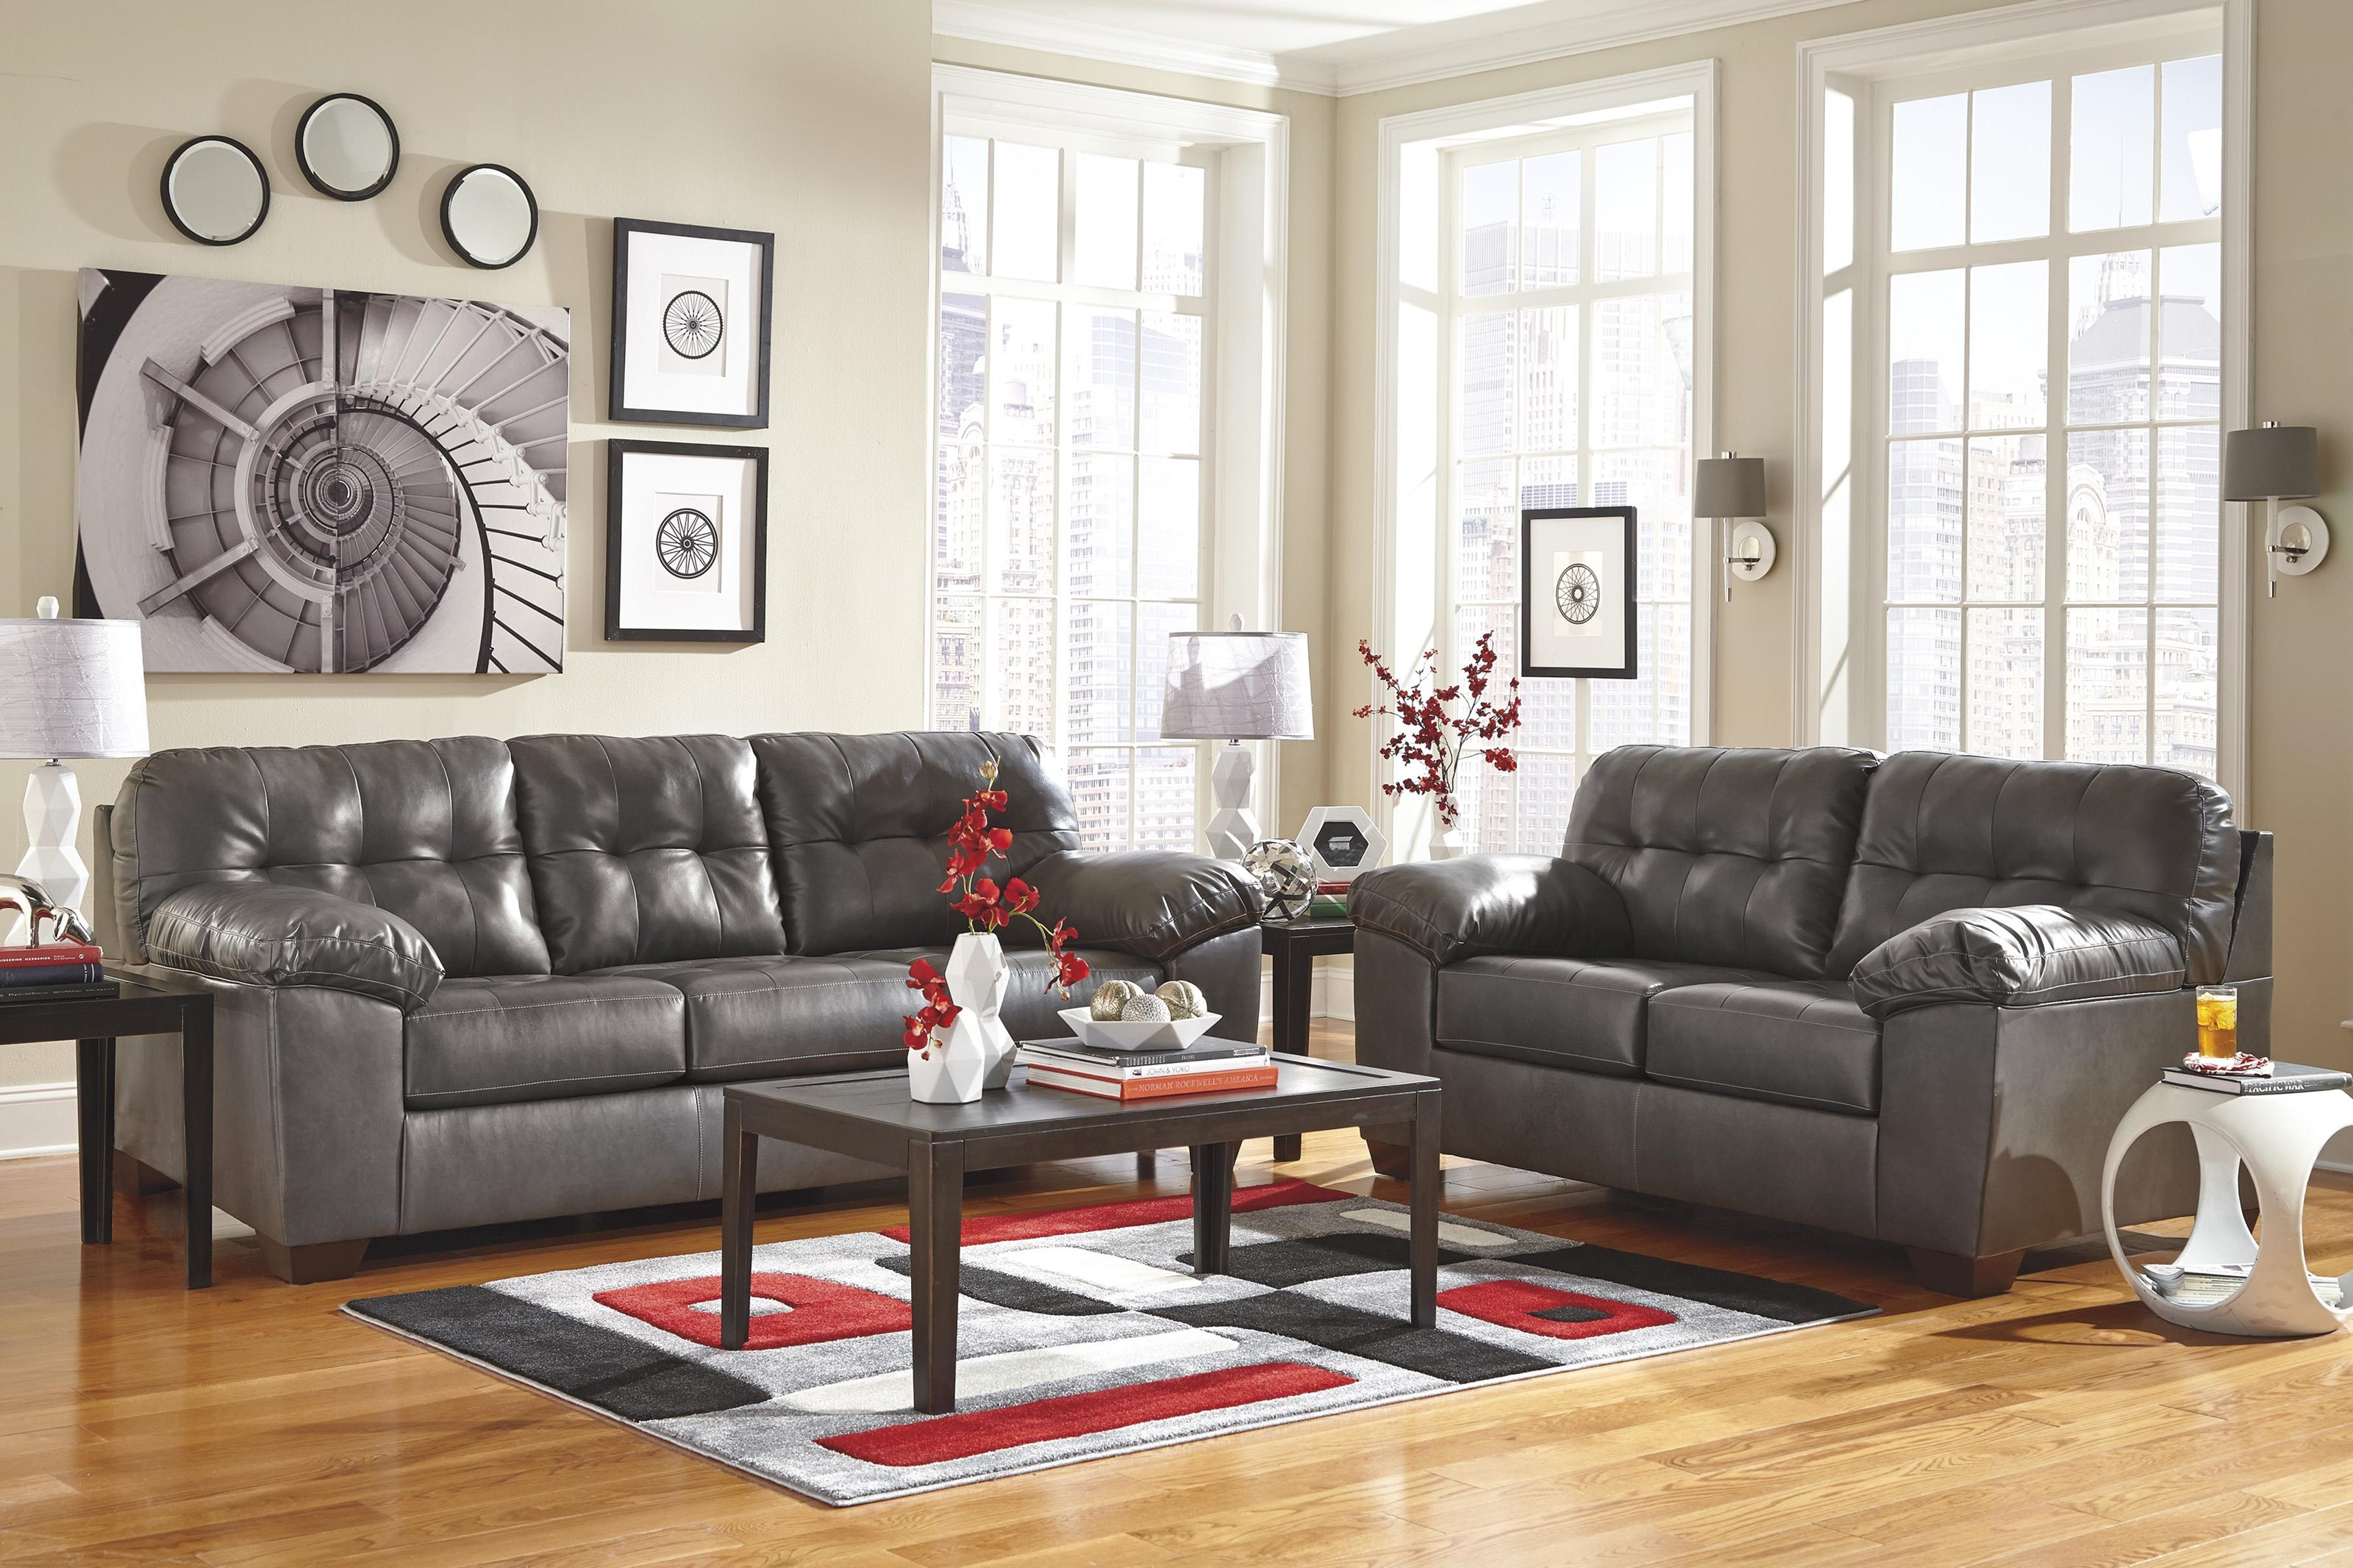 Alliston DuraBlend® - Gray 8PC LIVING ROOM by Signature Design by Ashley at Value City Furniture